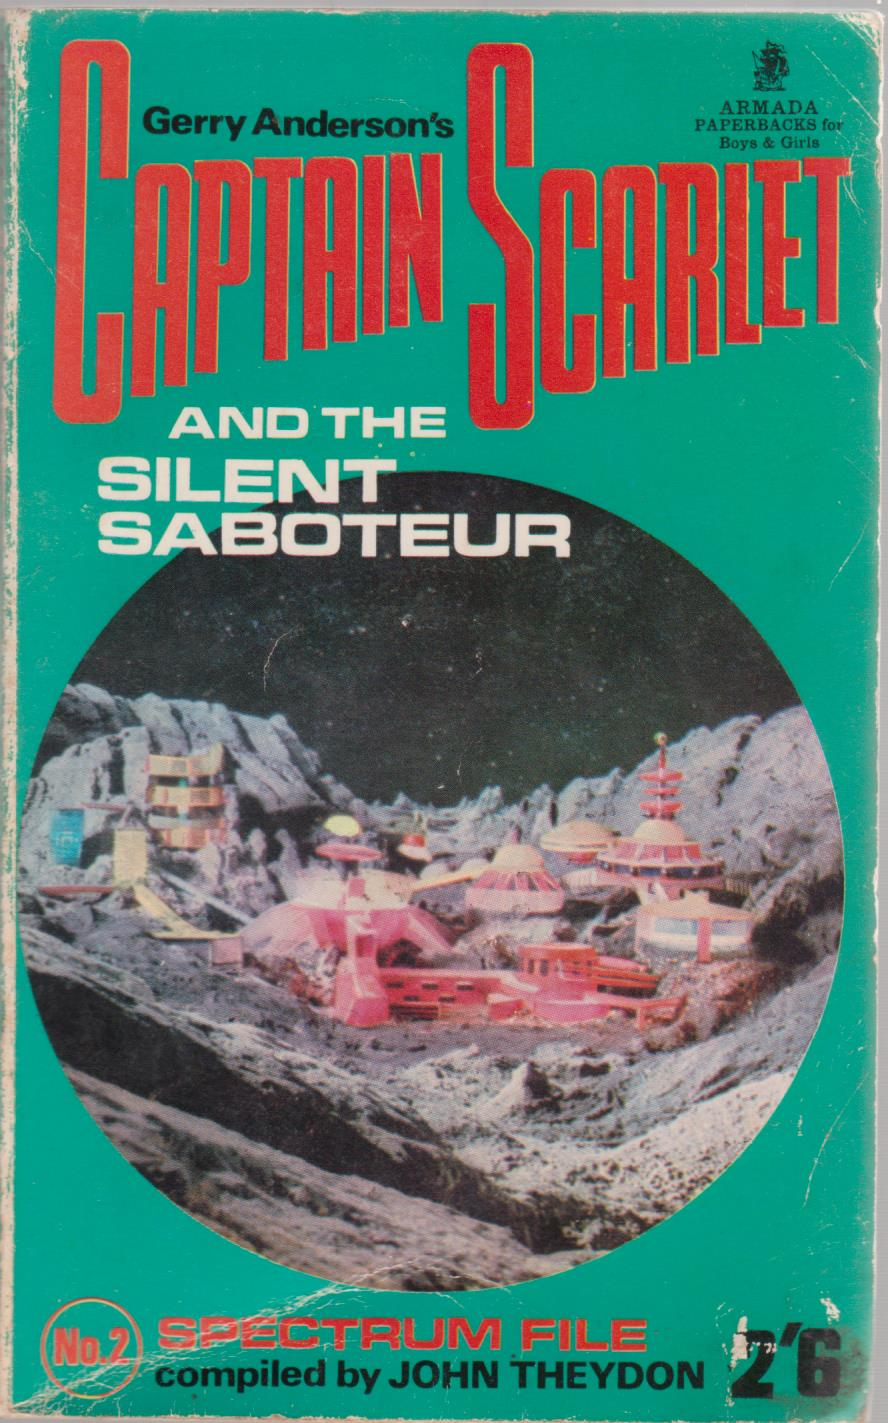 cover image of Captain Scarlet and the Silent Saboteur by Gerry Anderson for sale in New Zealand